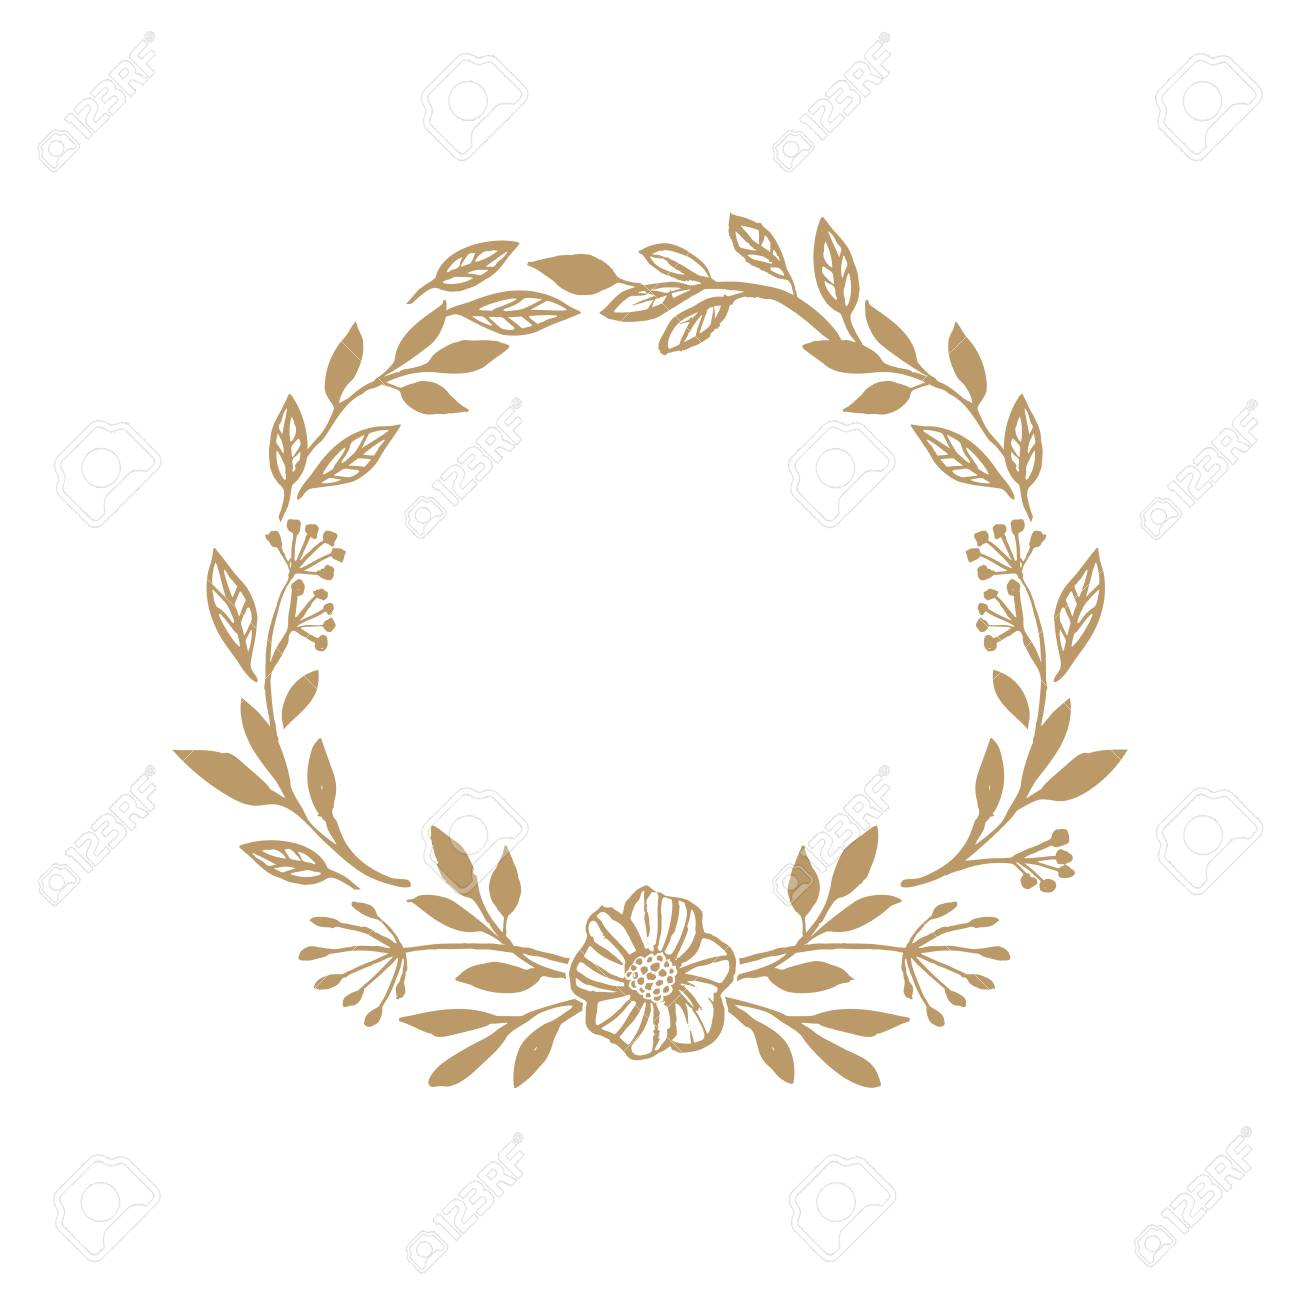 Floral rustic wreath for wedding invitation template design. Bot.